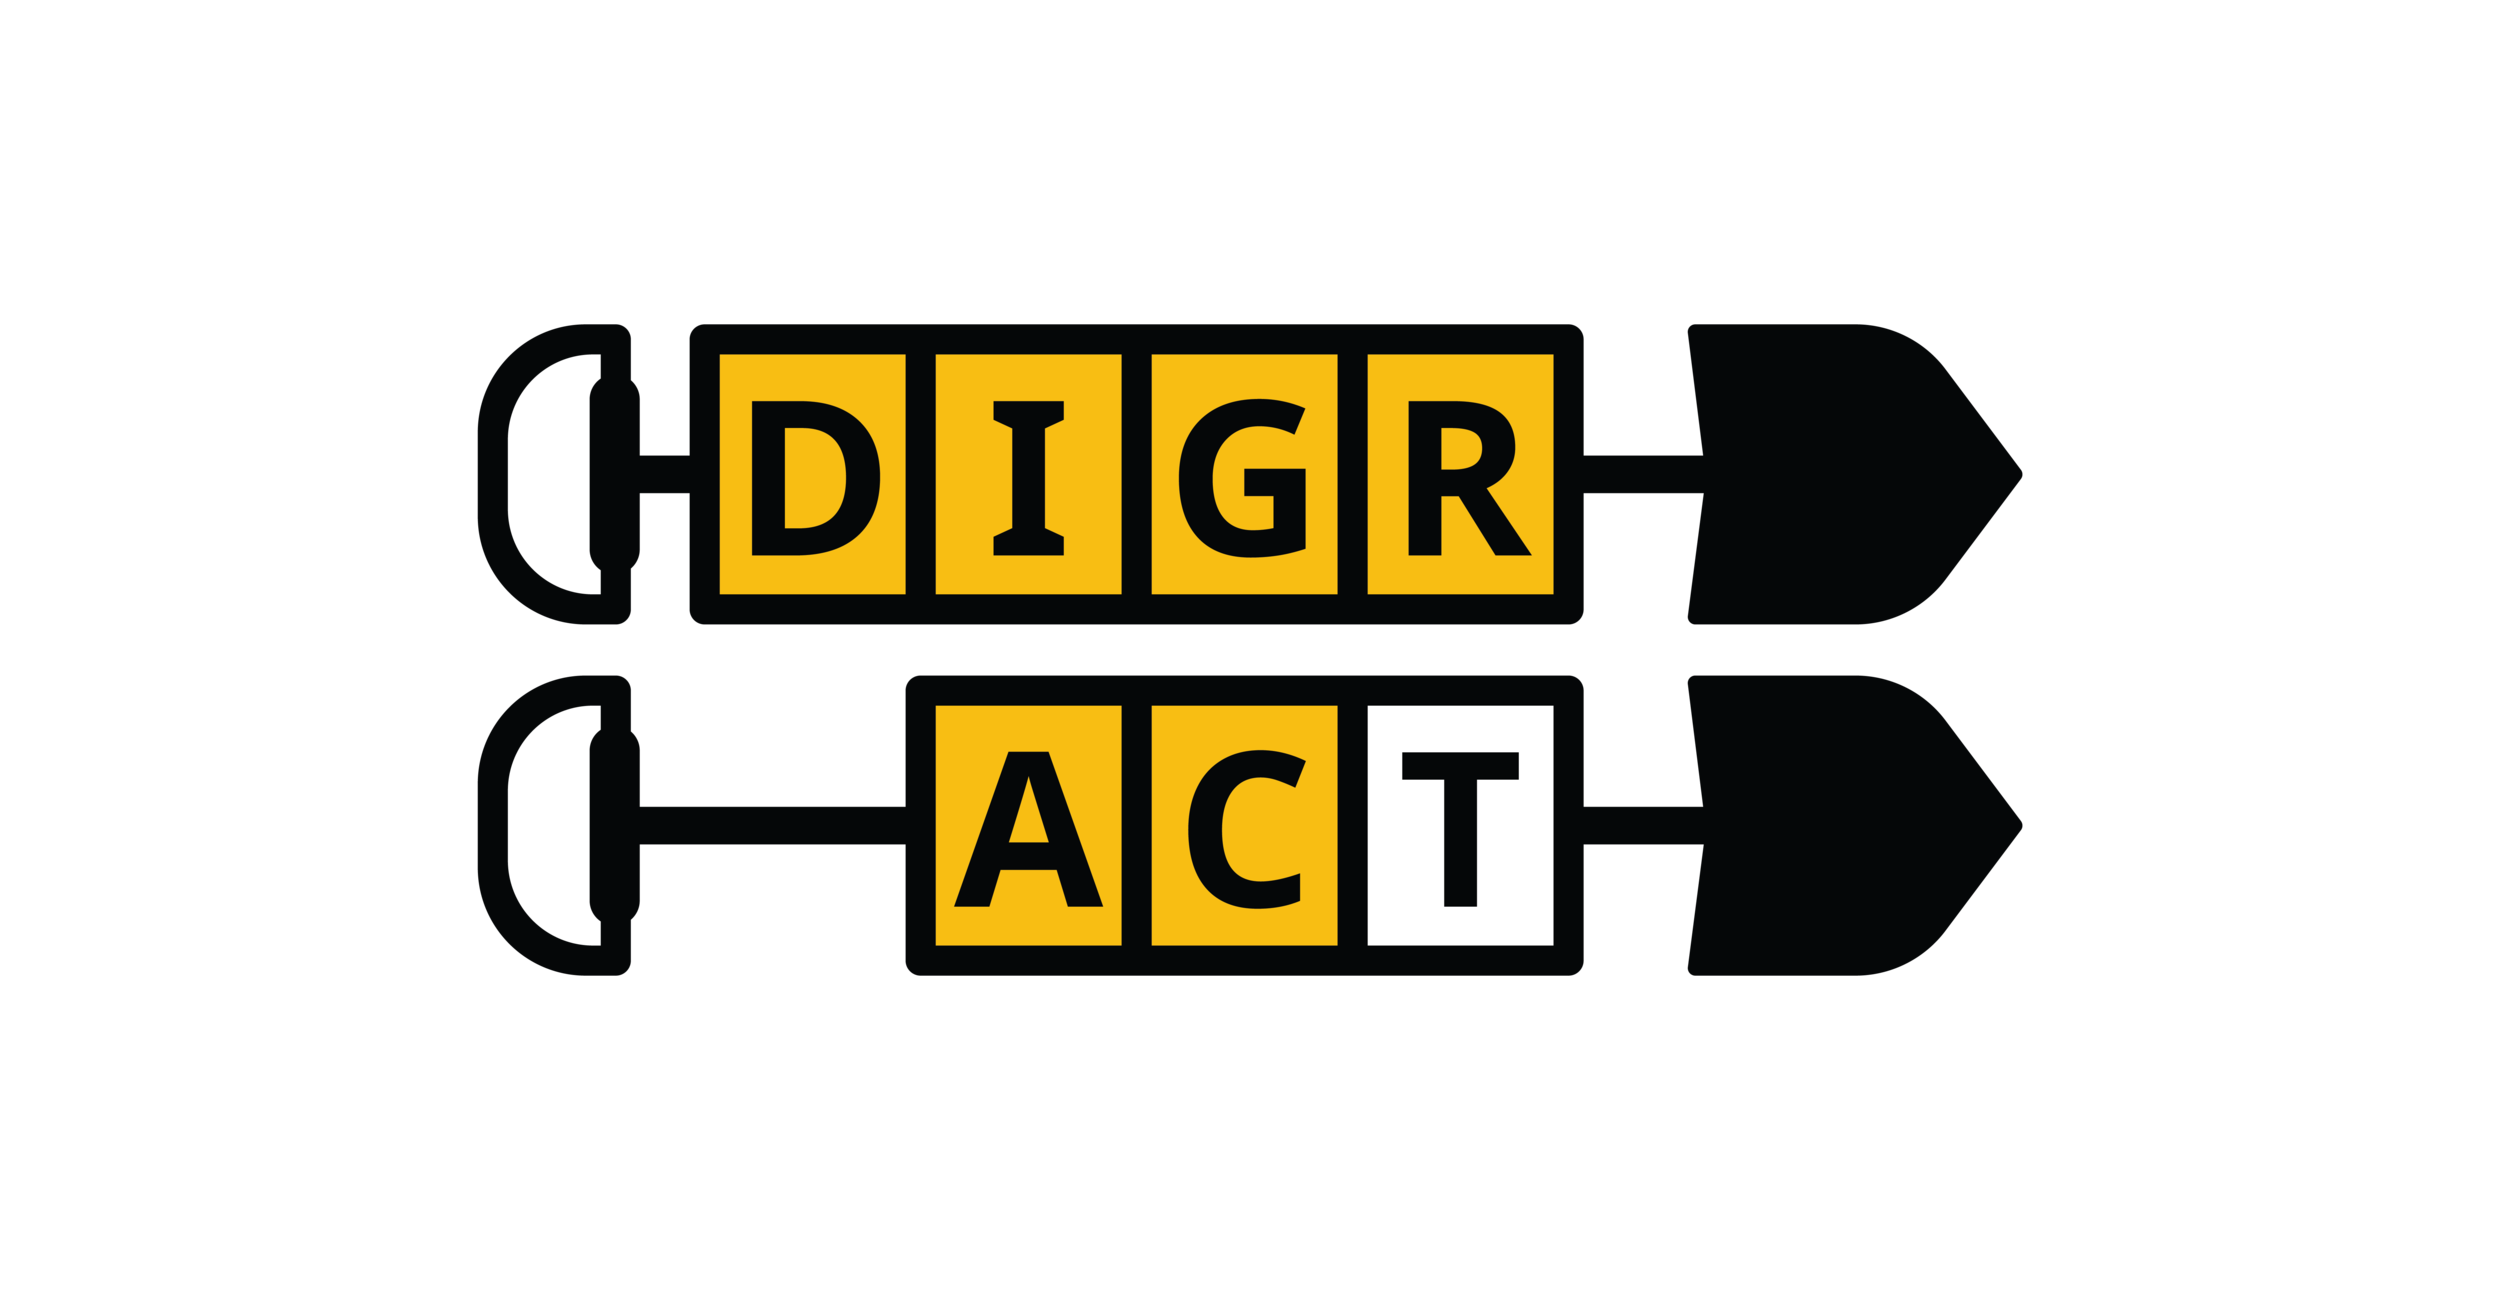 [P] DIGR-ACT_Stacked Logo - DIGR-AC.png